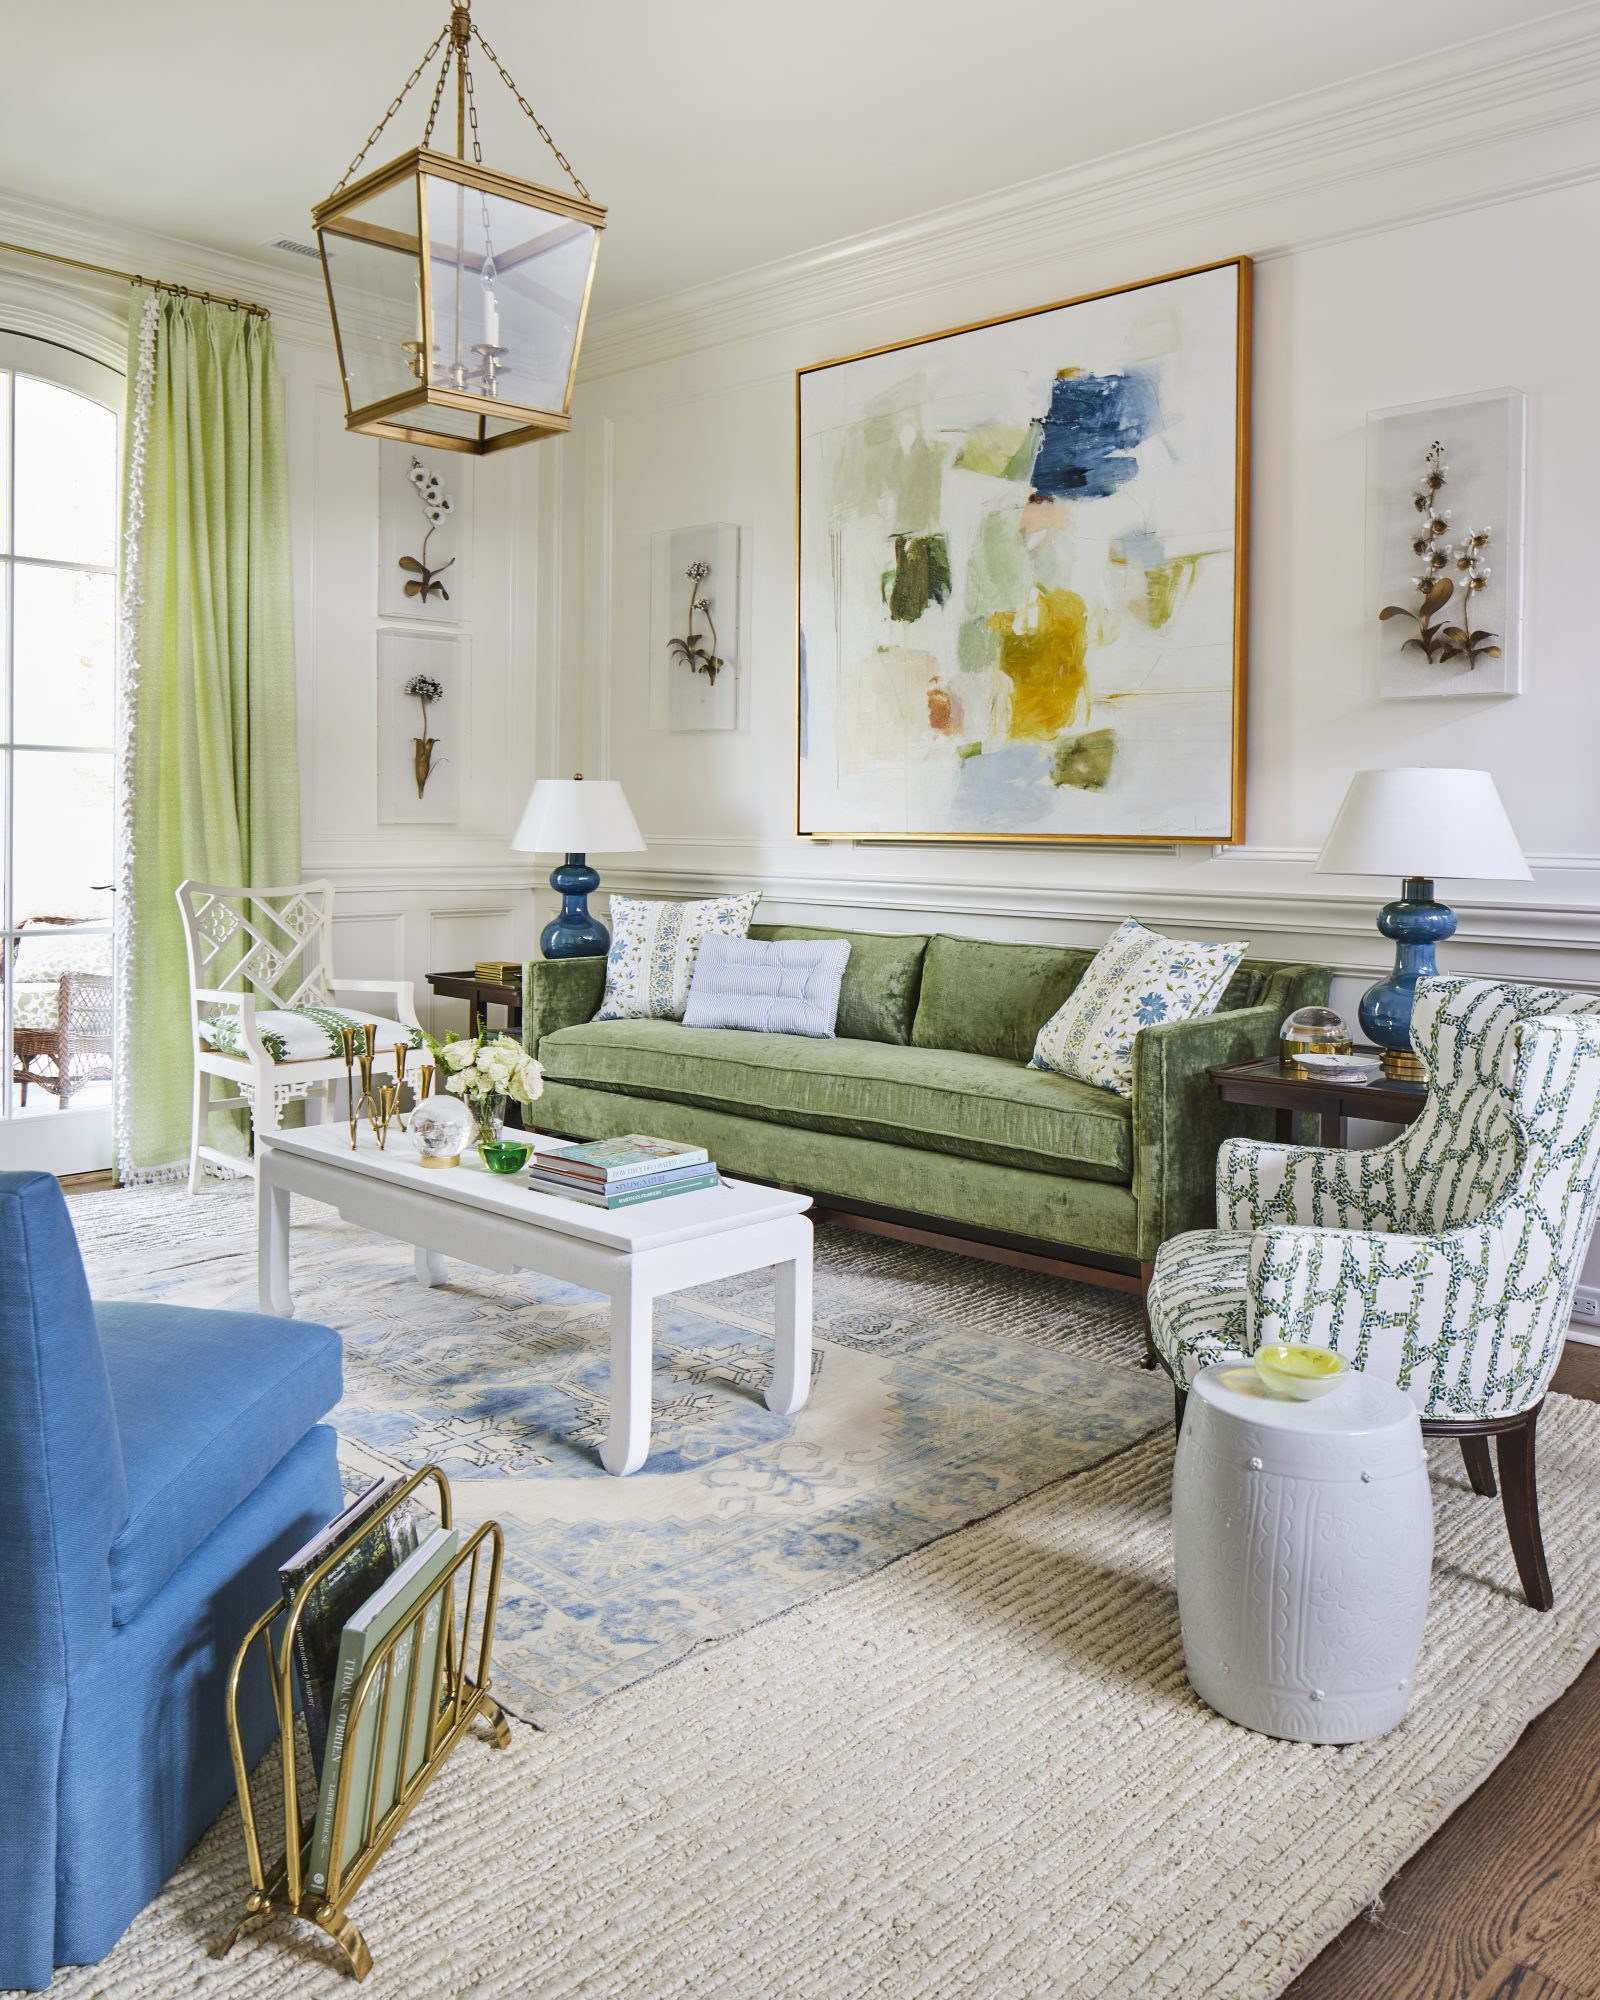 White Loft Space with Green Sofa and Blue Chair